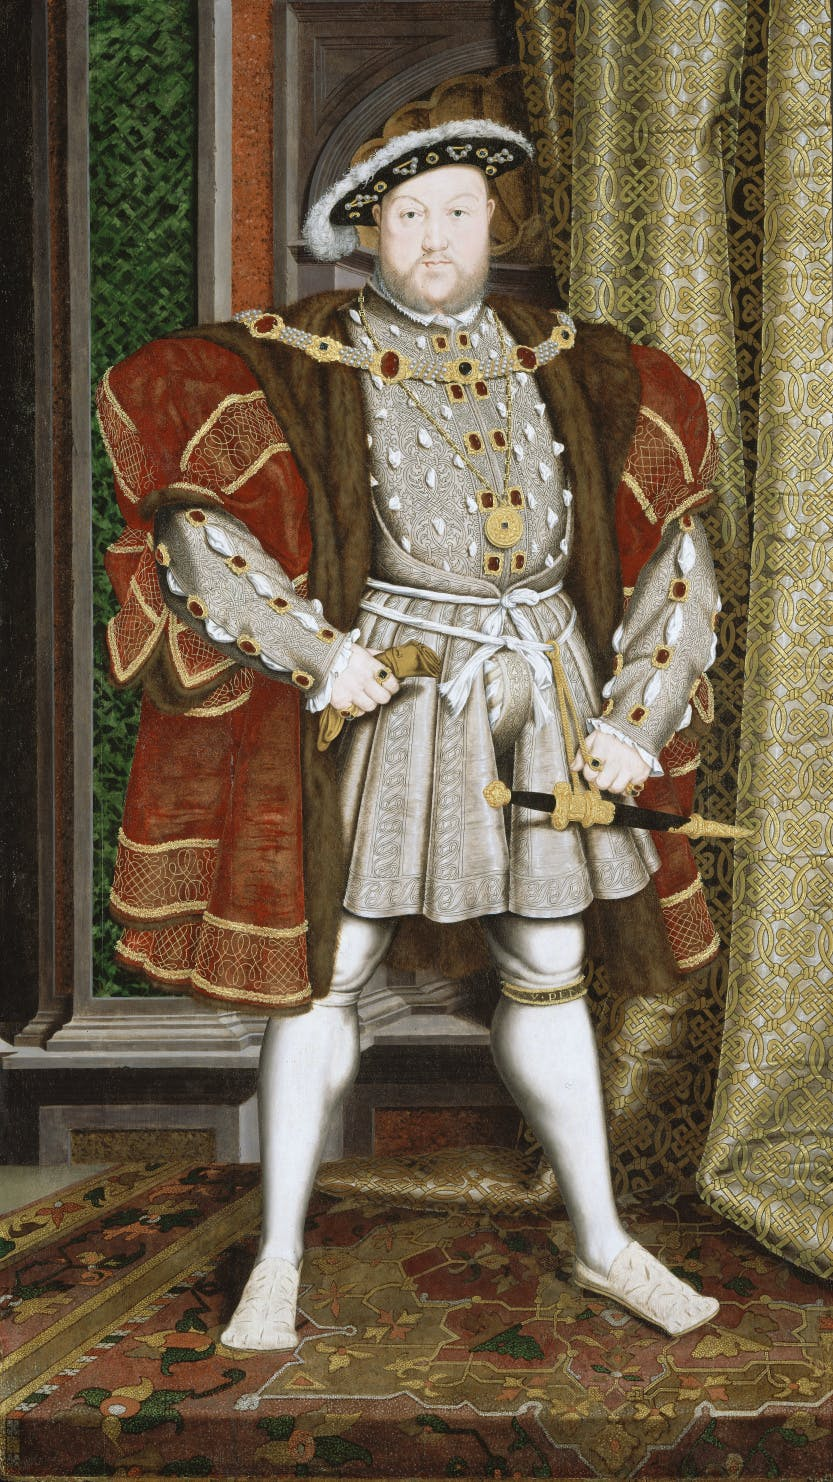 A full length portrait of the English monarch King Henry VIII.